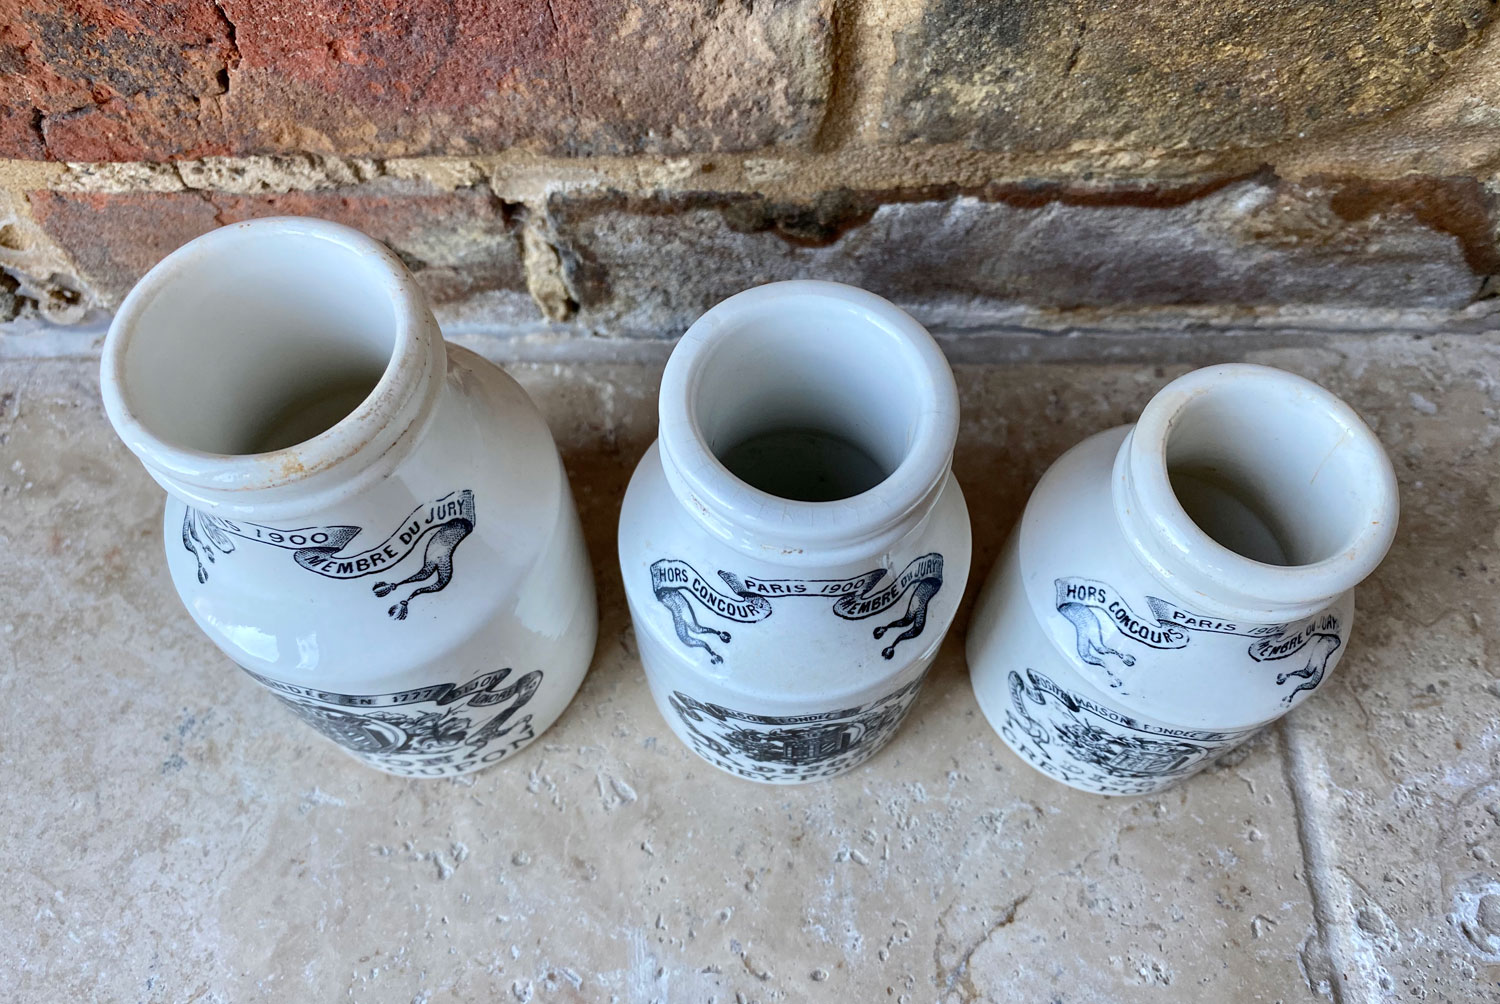 antique early 20th century french white ironstone advertising grey poupon dijon mustard pots sarreguemines